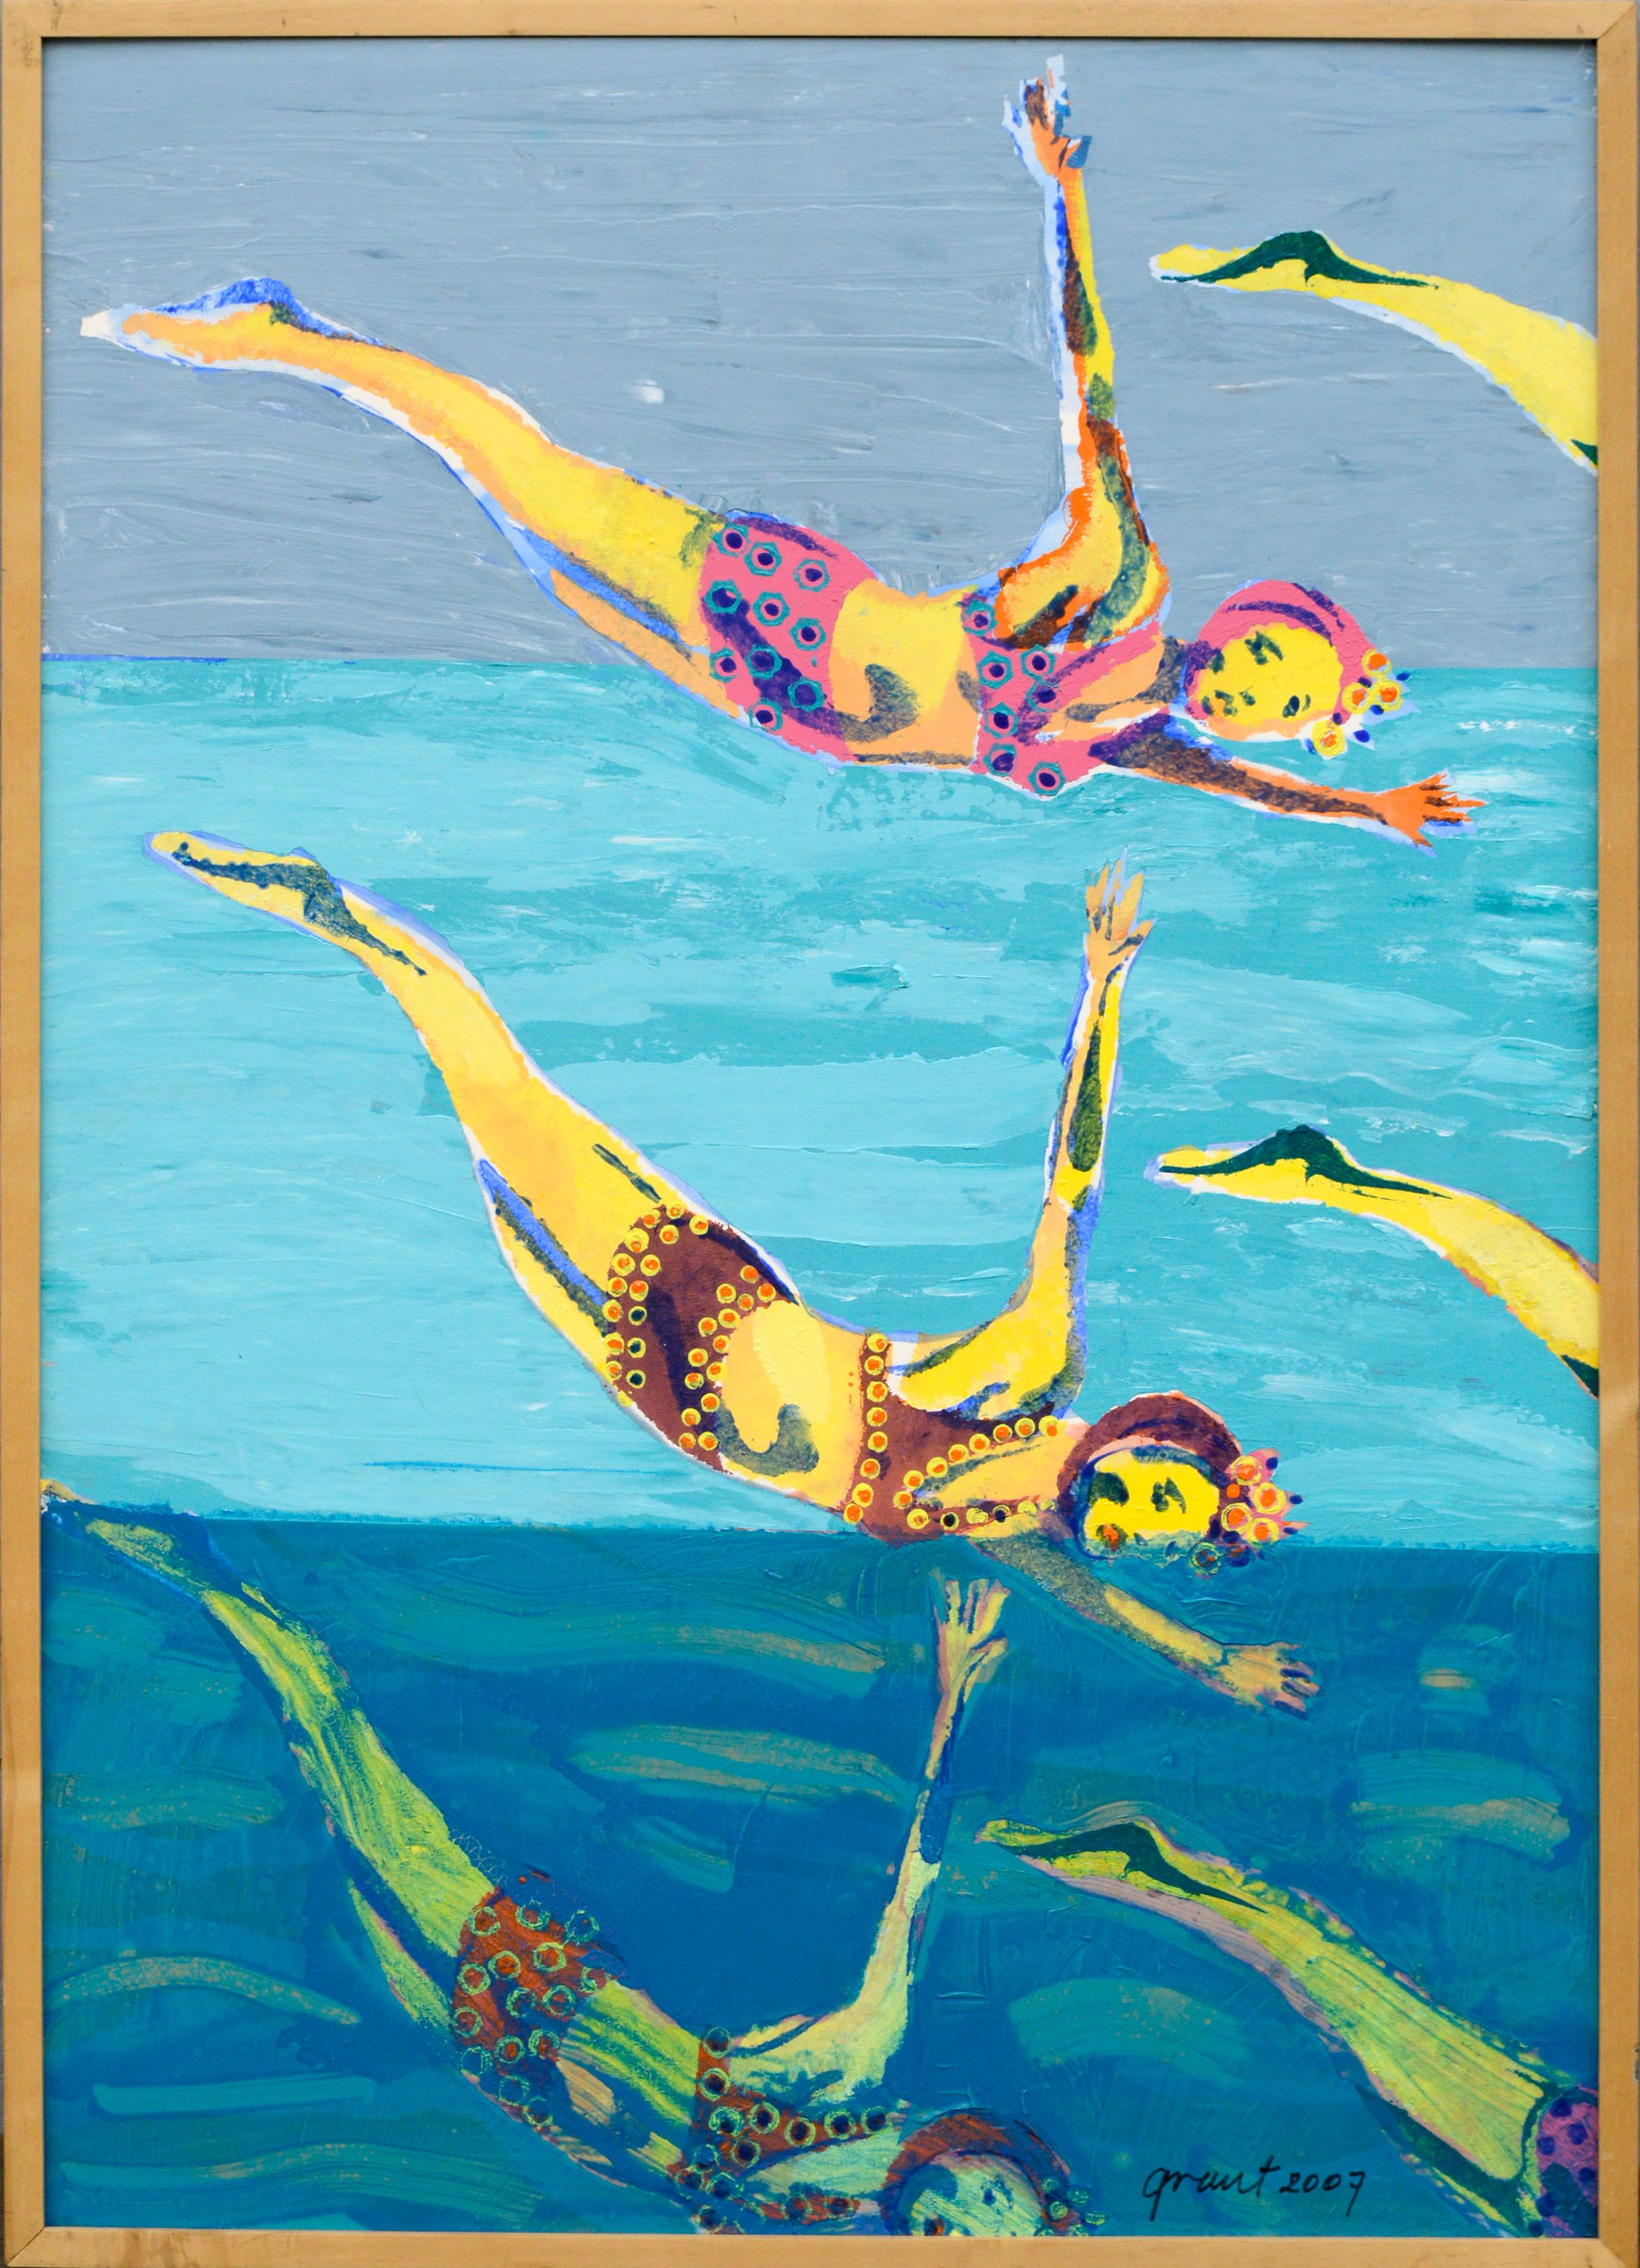 Colorful Swimmers in the Air in Blue